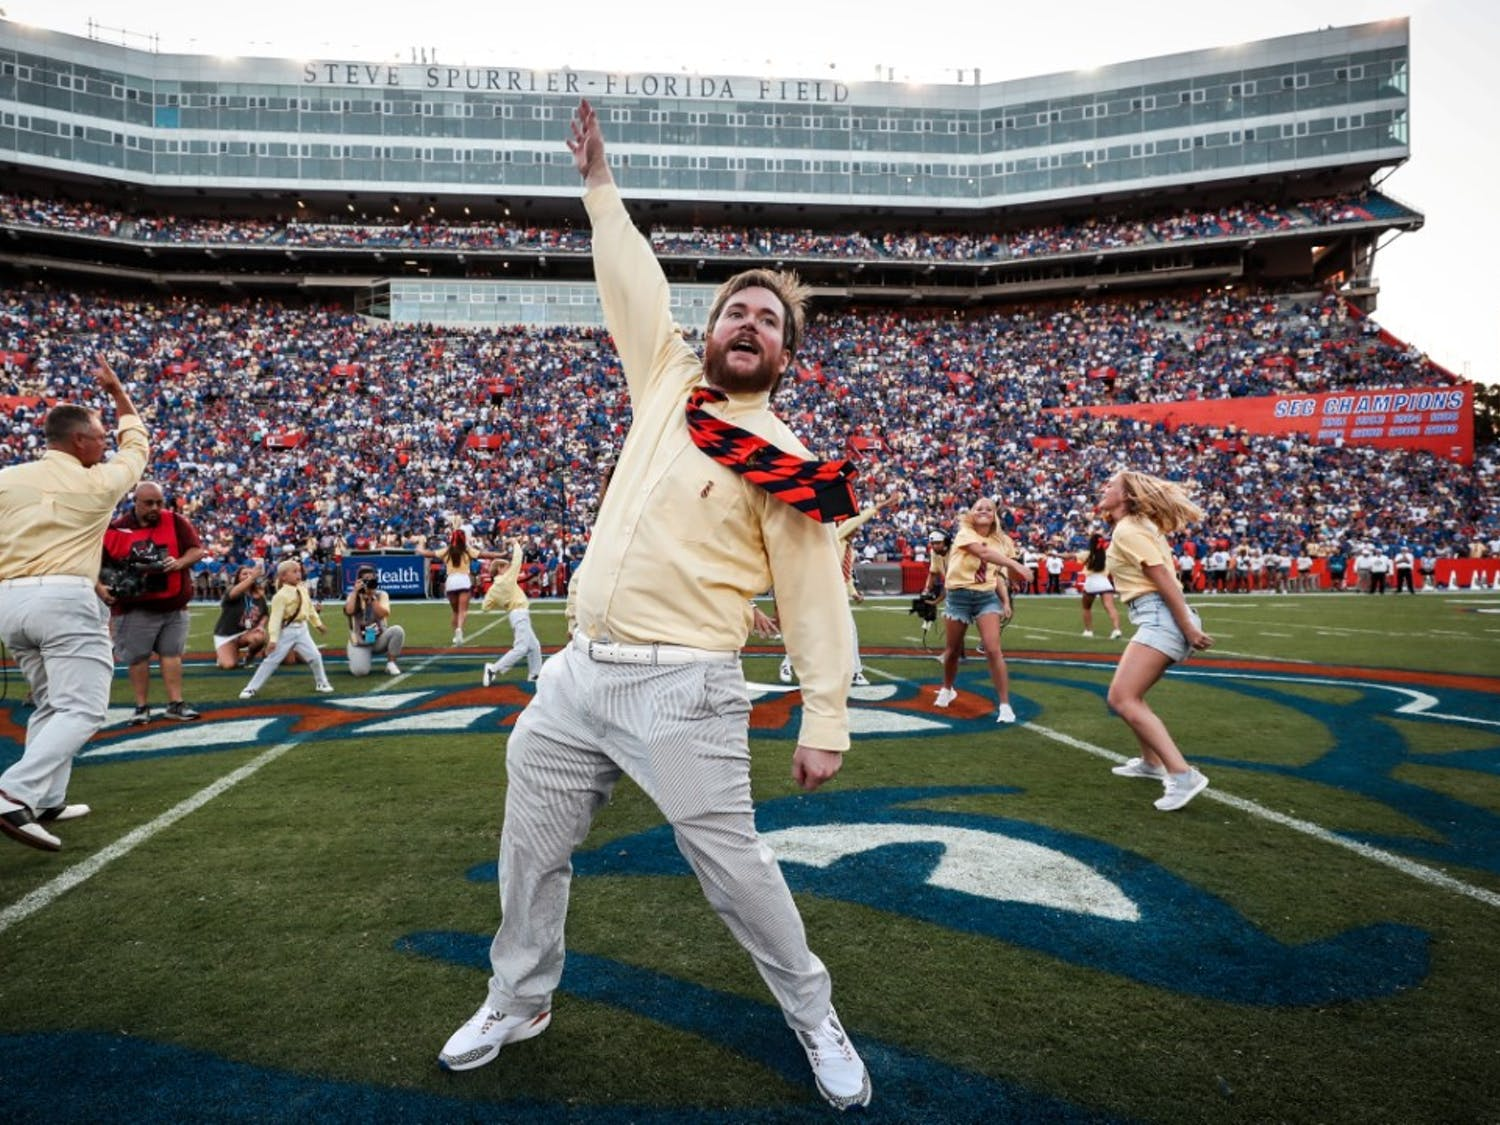 """George Edmondons's family led UF fans in his famous """"two-bits"""" cheer at Saturday night's game. The UF Athletic Association organized the cheer as well as a mural and t-shirt sale honoring the late """"Mr.Two Bits."""""""